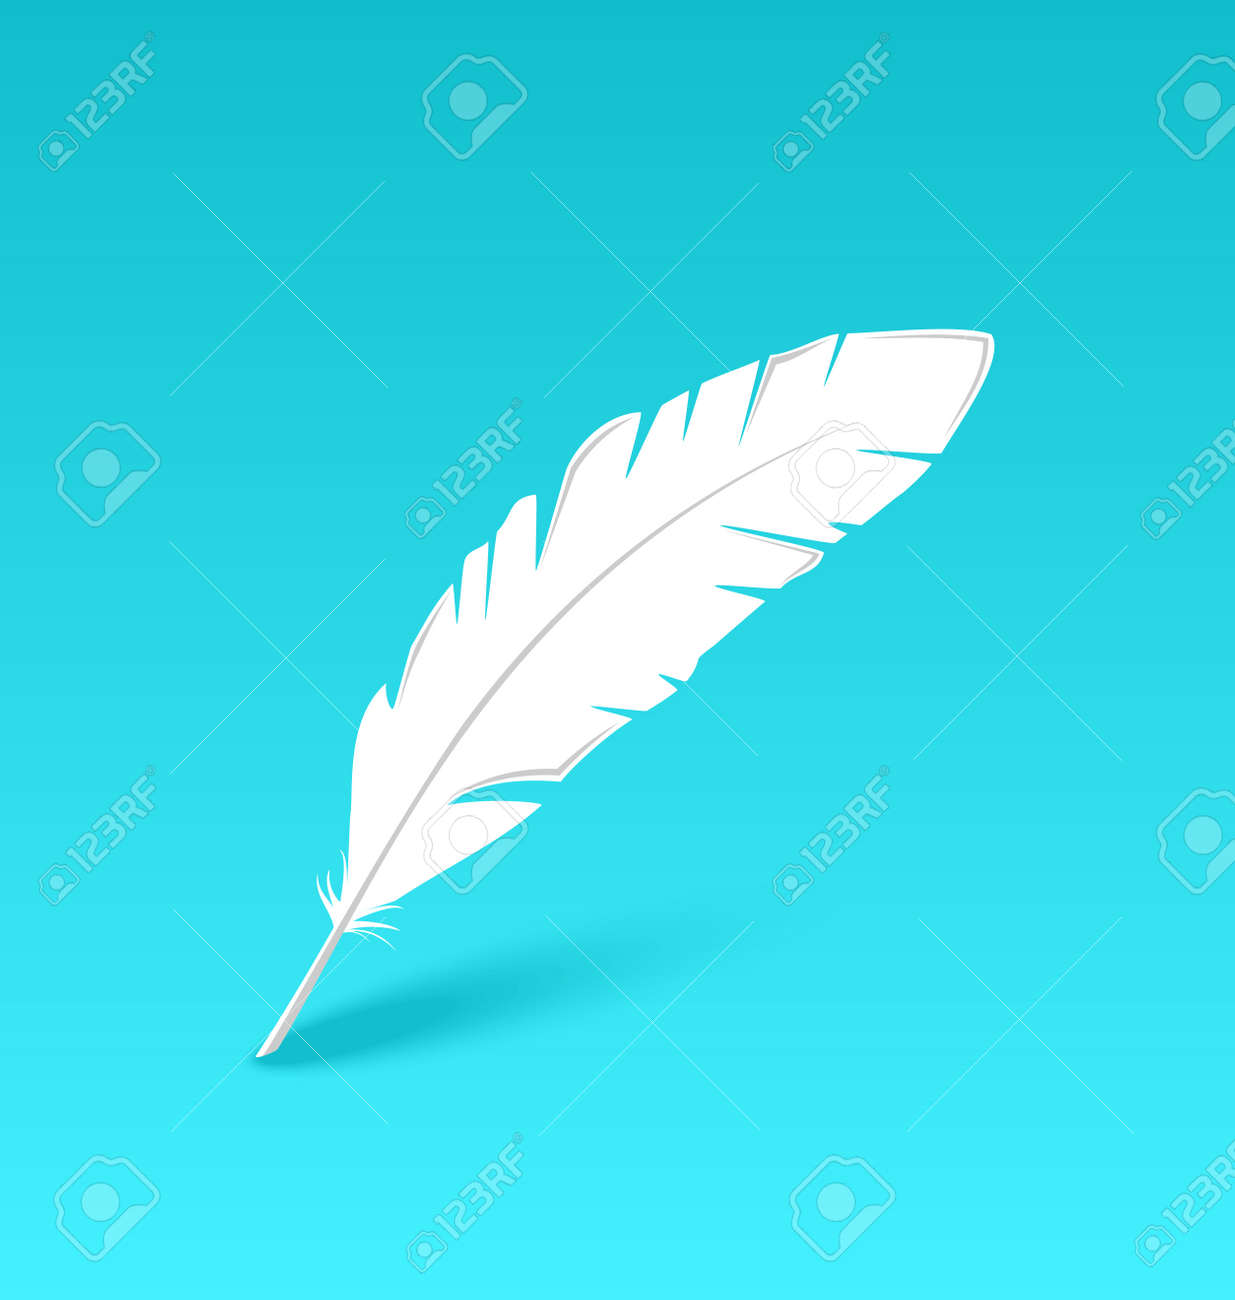 Illustration white feather isolated on blue background - vector Stock Photo - 22096281